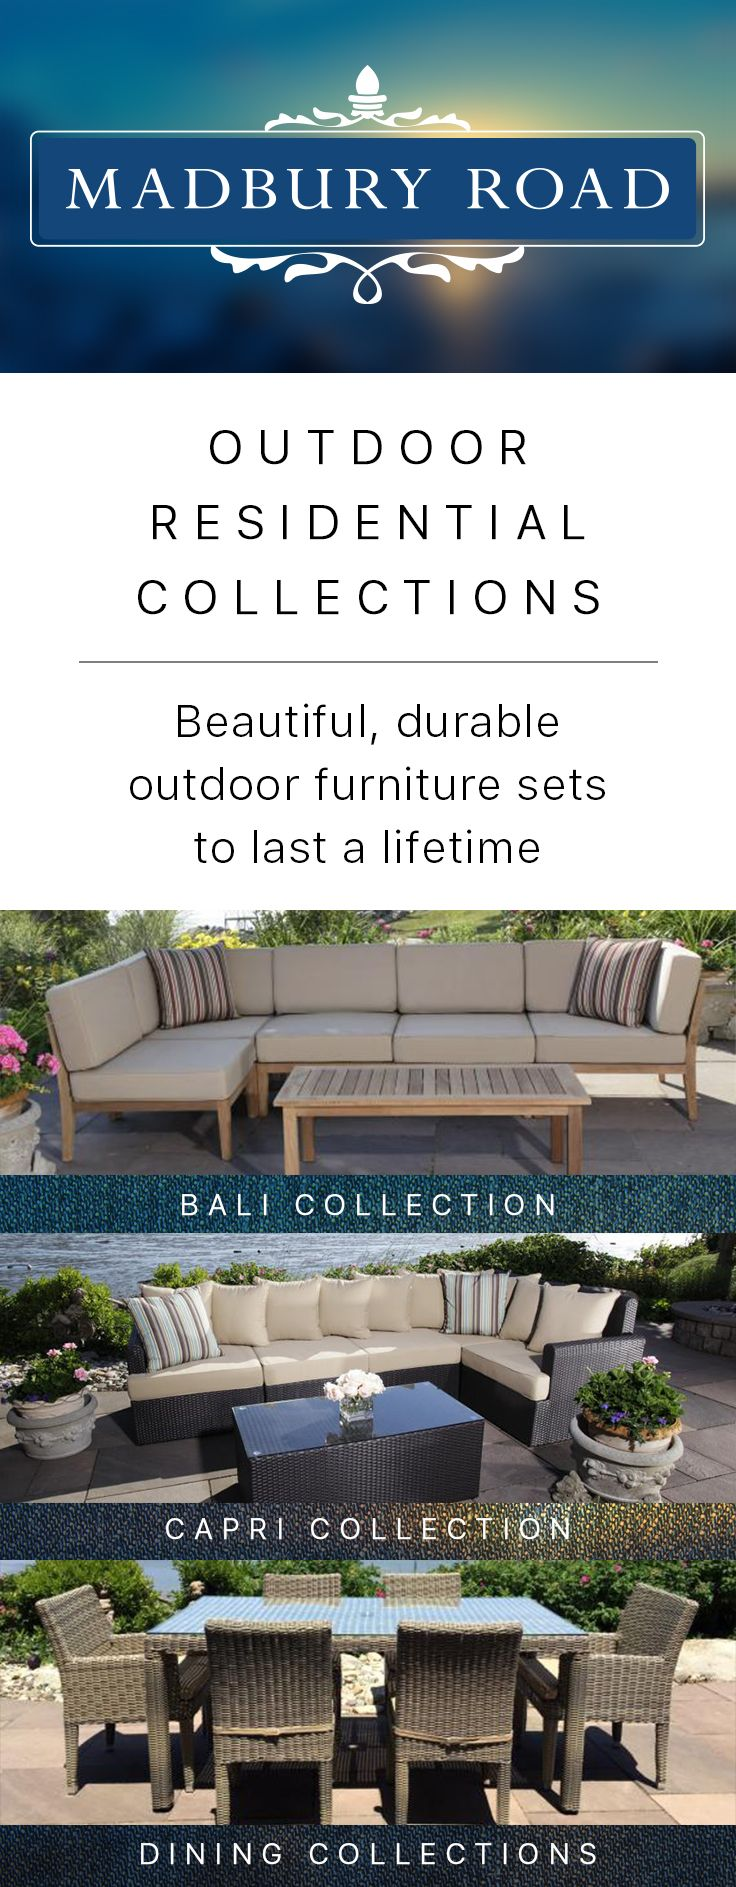 Our Residential Outdoor Furniture Is Built To Last, With Quality Materials.  At Madbury Road